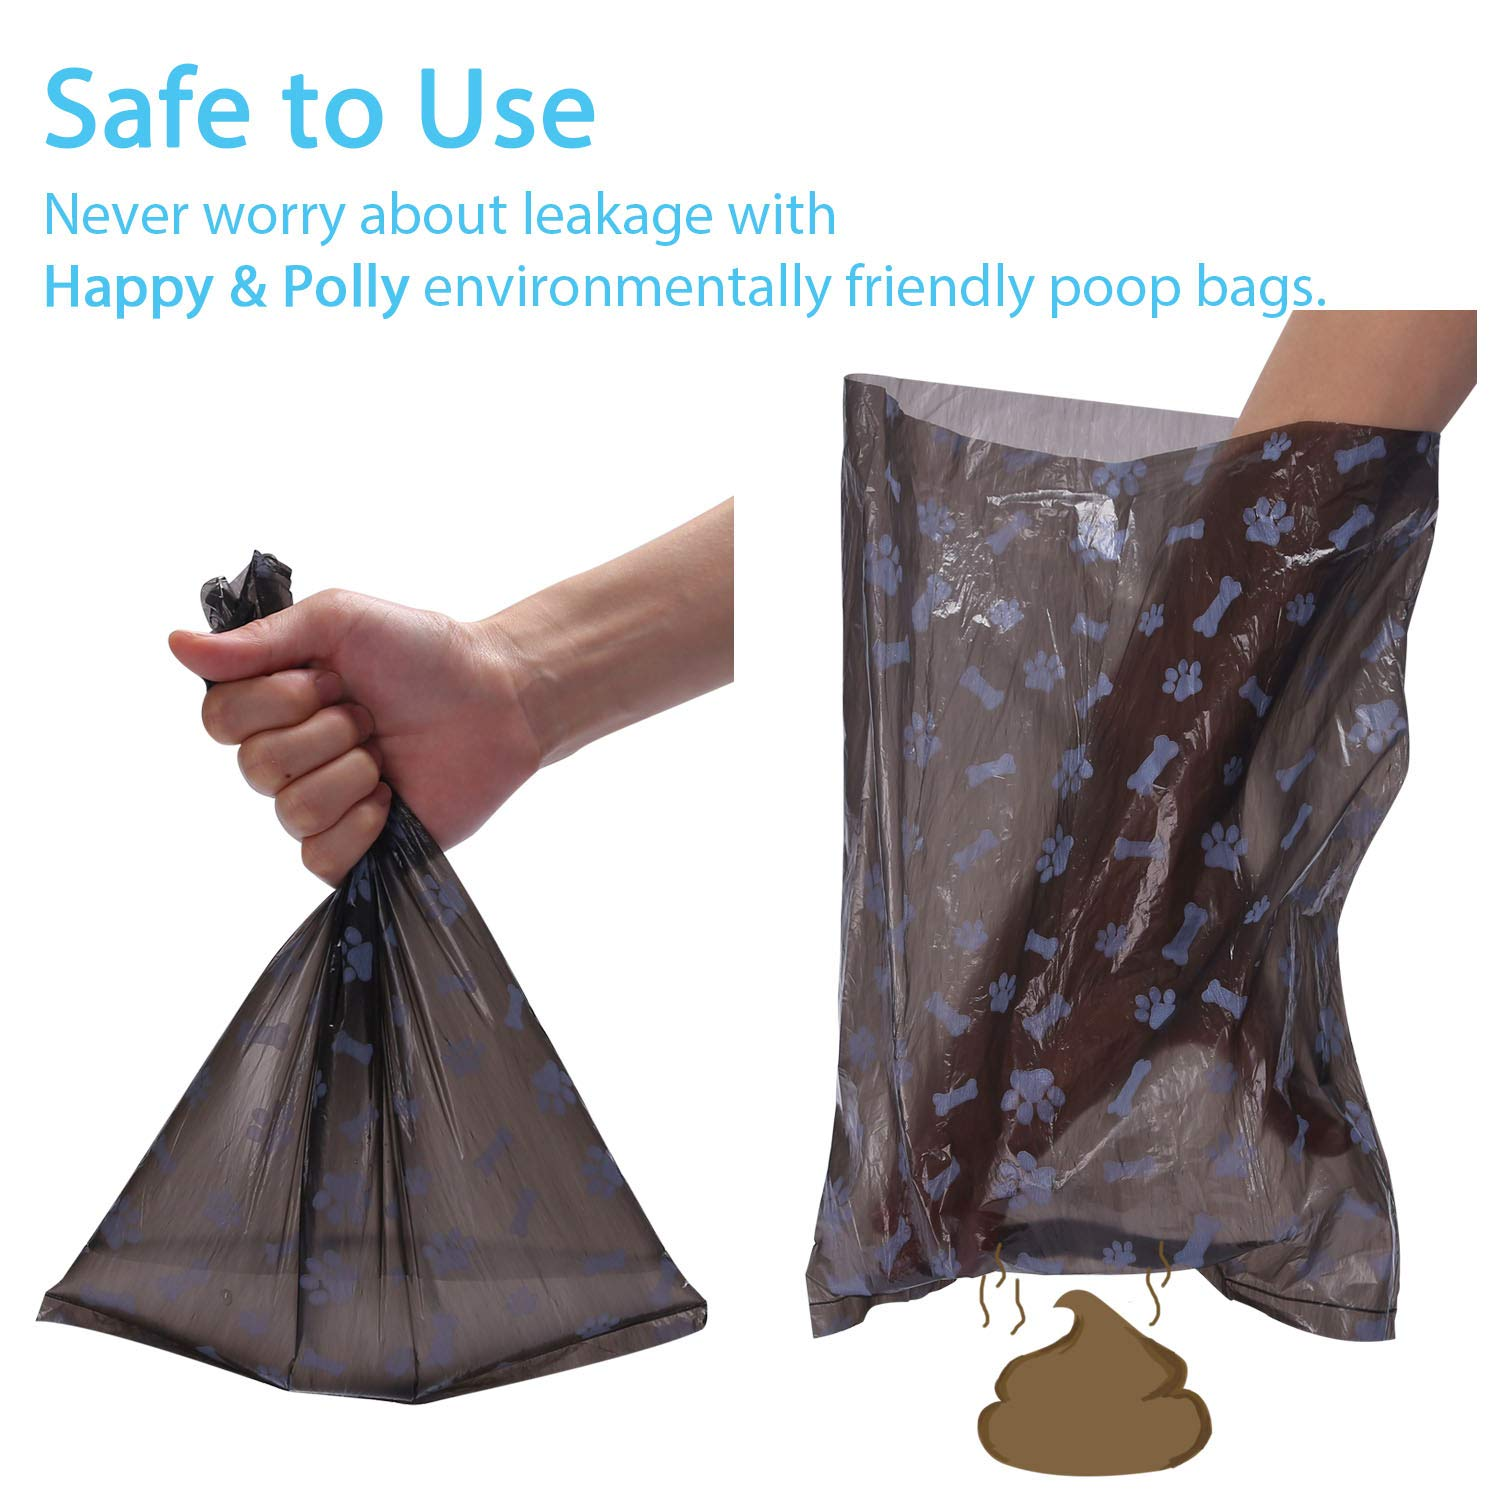 Amazon.com: Happy & Polly - Bolsas de caca biodegradables + ...